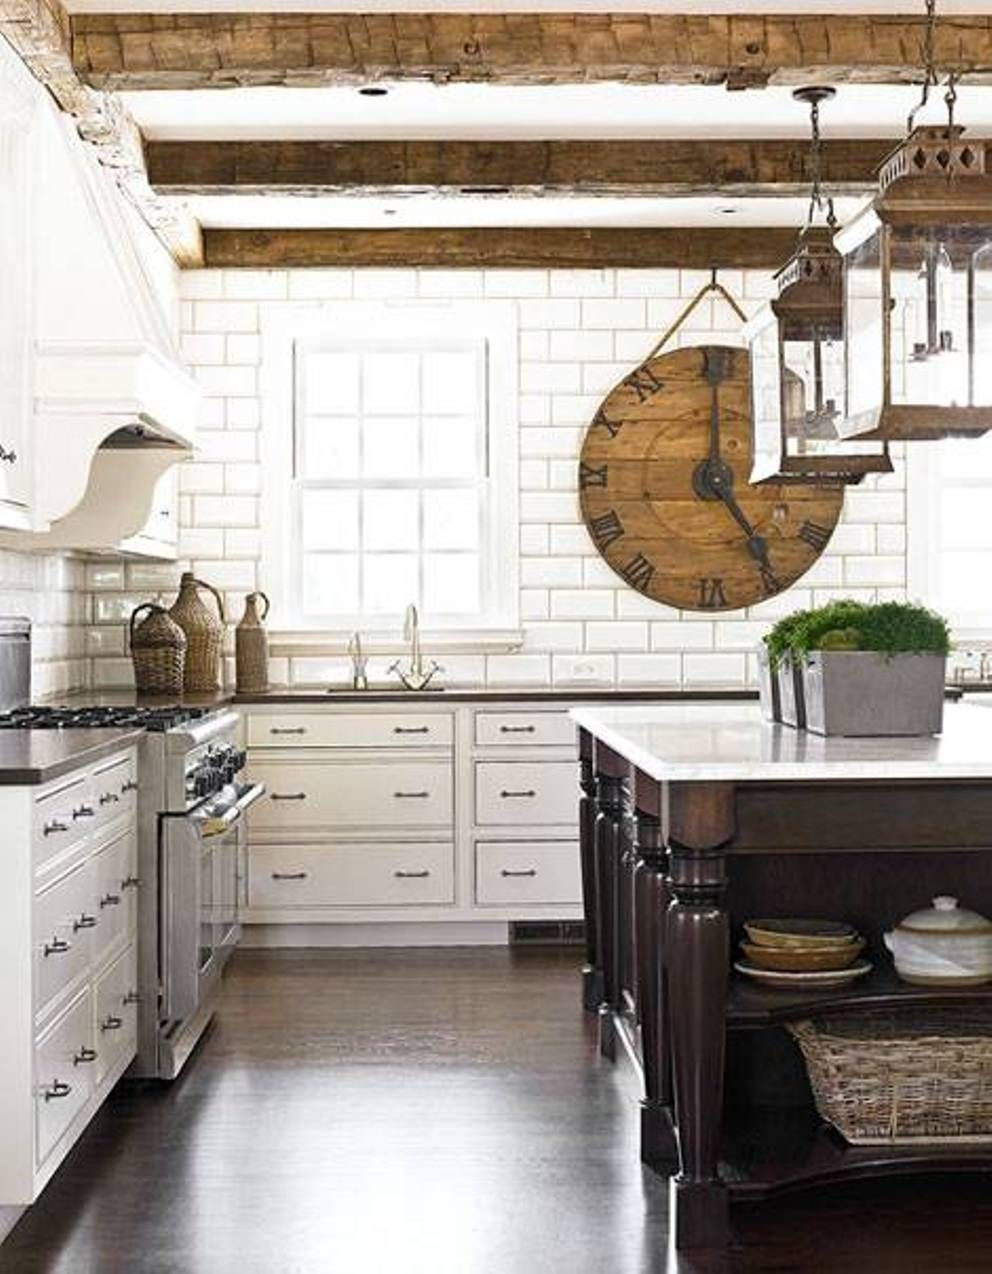 white kitchen exposed beams in ceiling and subway tiles and white cabinets and foyer lantern pendant lighting over island rustic exposed beams in ceiling - Kitchen Expos